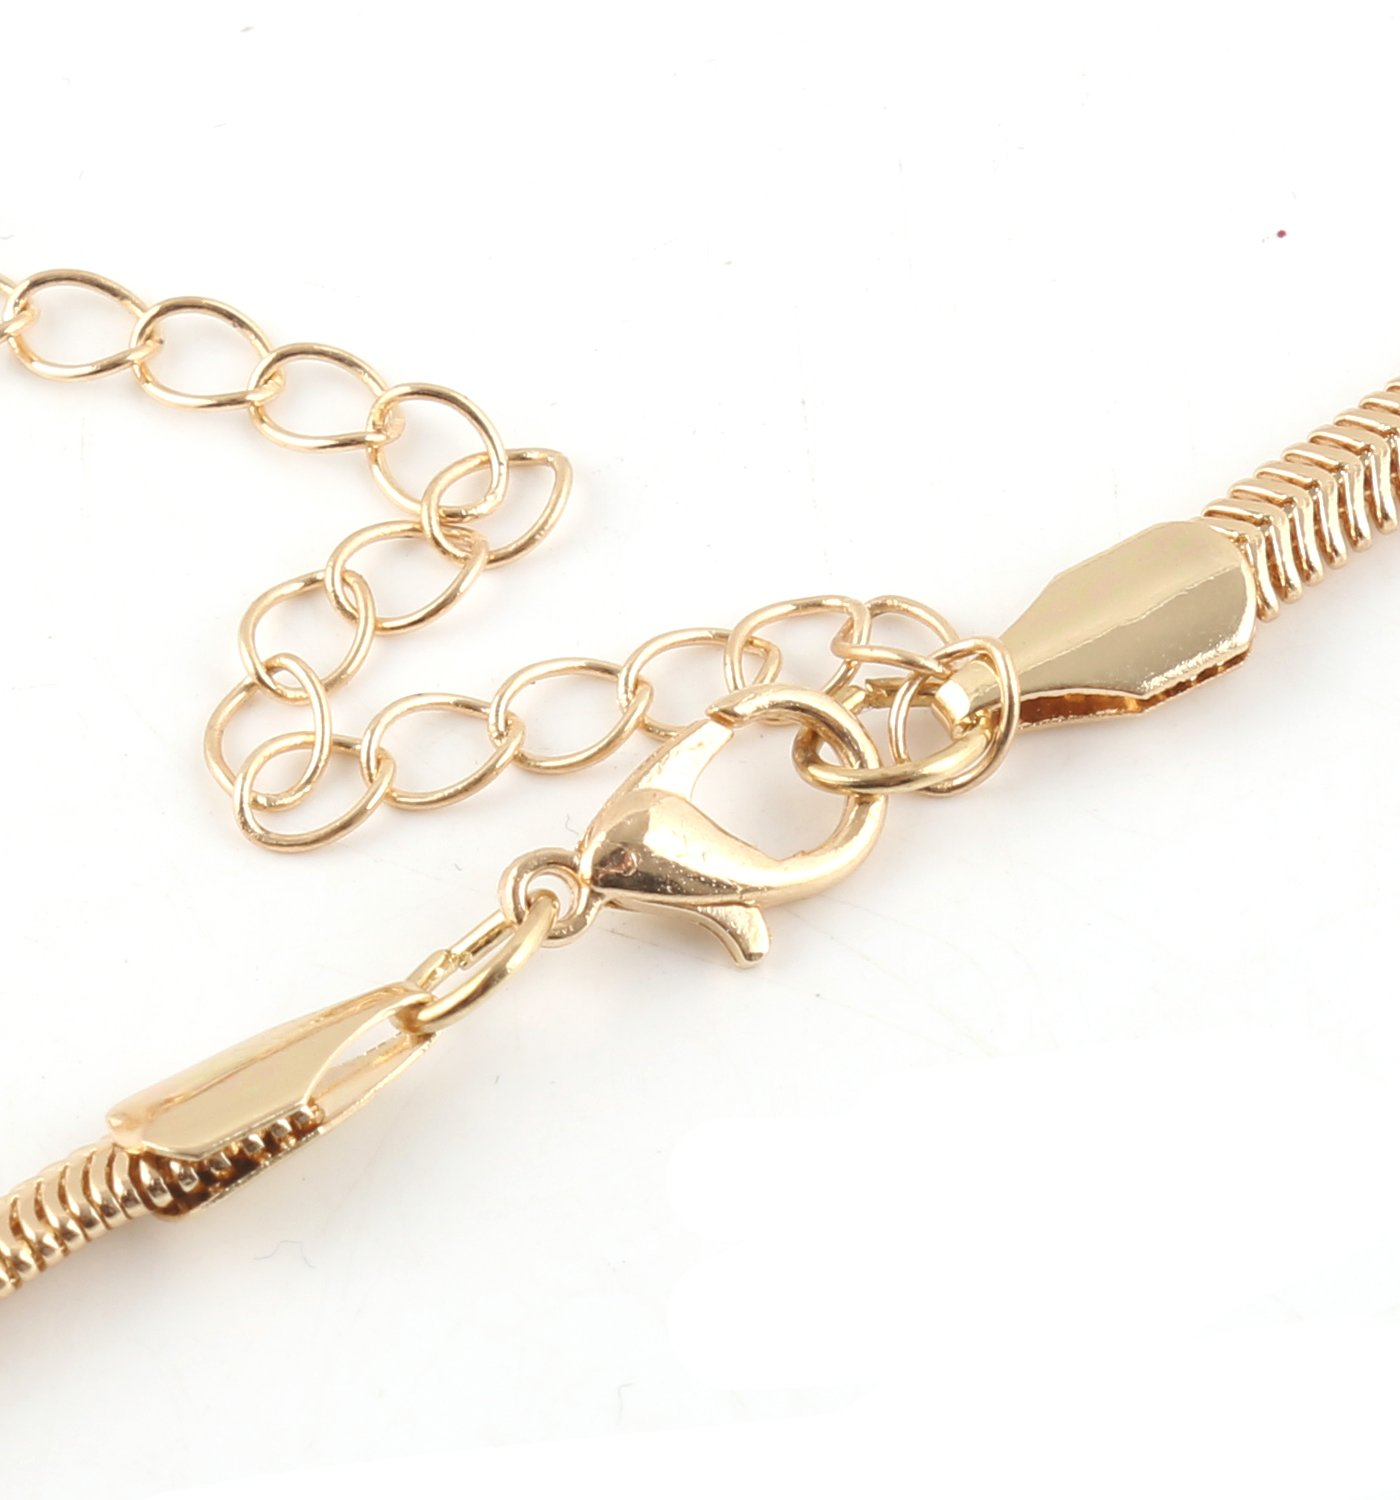 VOGUEKNOCK Long Knotted Necklace Flat Snake Chain with Tassel Pedant Y Lariat Necklace Gold